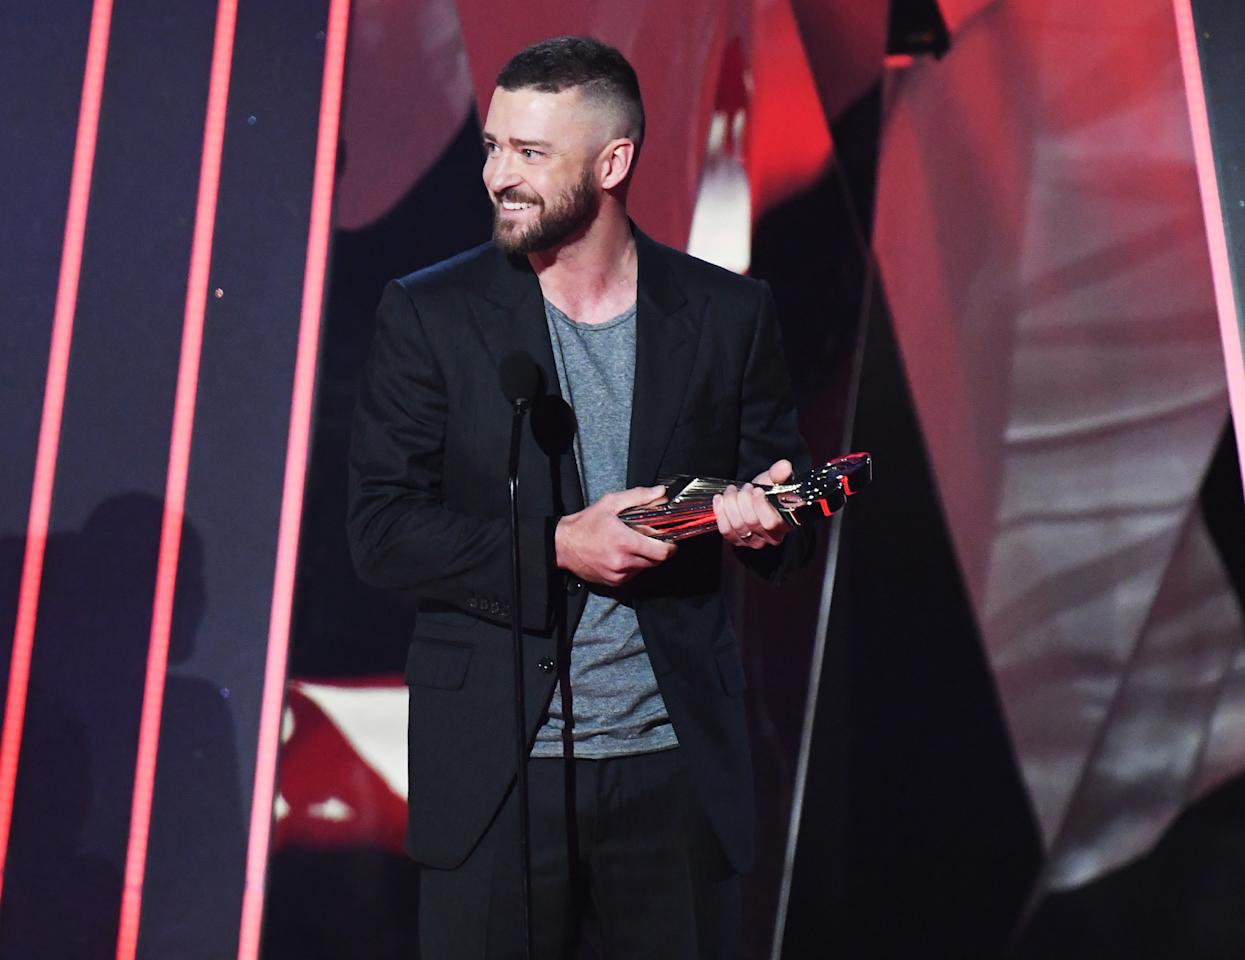 """<p>After warming hearts at the Teen Choice Awards last August, Timberlake was back at it again when he won the Song of the Year Award for """"Can't Stop the Feeling."""" After stepping on stage to accept the trophy, he <a rel=""""nofollow"""" href=""""http://www.instyle.com/syndication/2017-iheartradio-music-awards-justin-timberlake-wins-inspiring-speech"""">talked about celebrating diversity</a>, saying, """"I wrote the song because I wanted it to be about inclusion, about being together."""" He added, """"I want to take this opportunity to speak to young people right now, because there's a lot of you looking at me. If you are black or brown, if you are gay, or are you are lesbian, or you are trans ... or maybe you're just a sissy singing boy from Tennessee. Anyone who is treating you unkindly is only because they are afraid ... they have been taught to be afraid of how important you are. Because being different means you make the difference. So f--k 'em.""""</p>"""